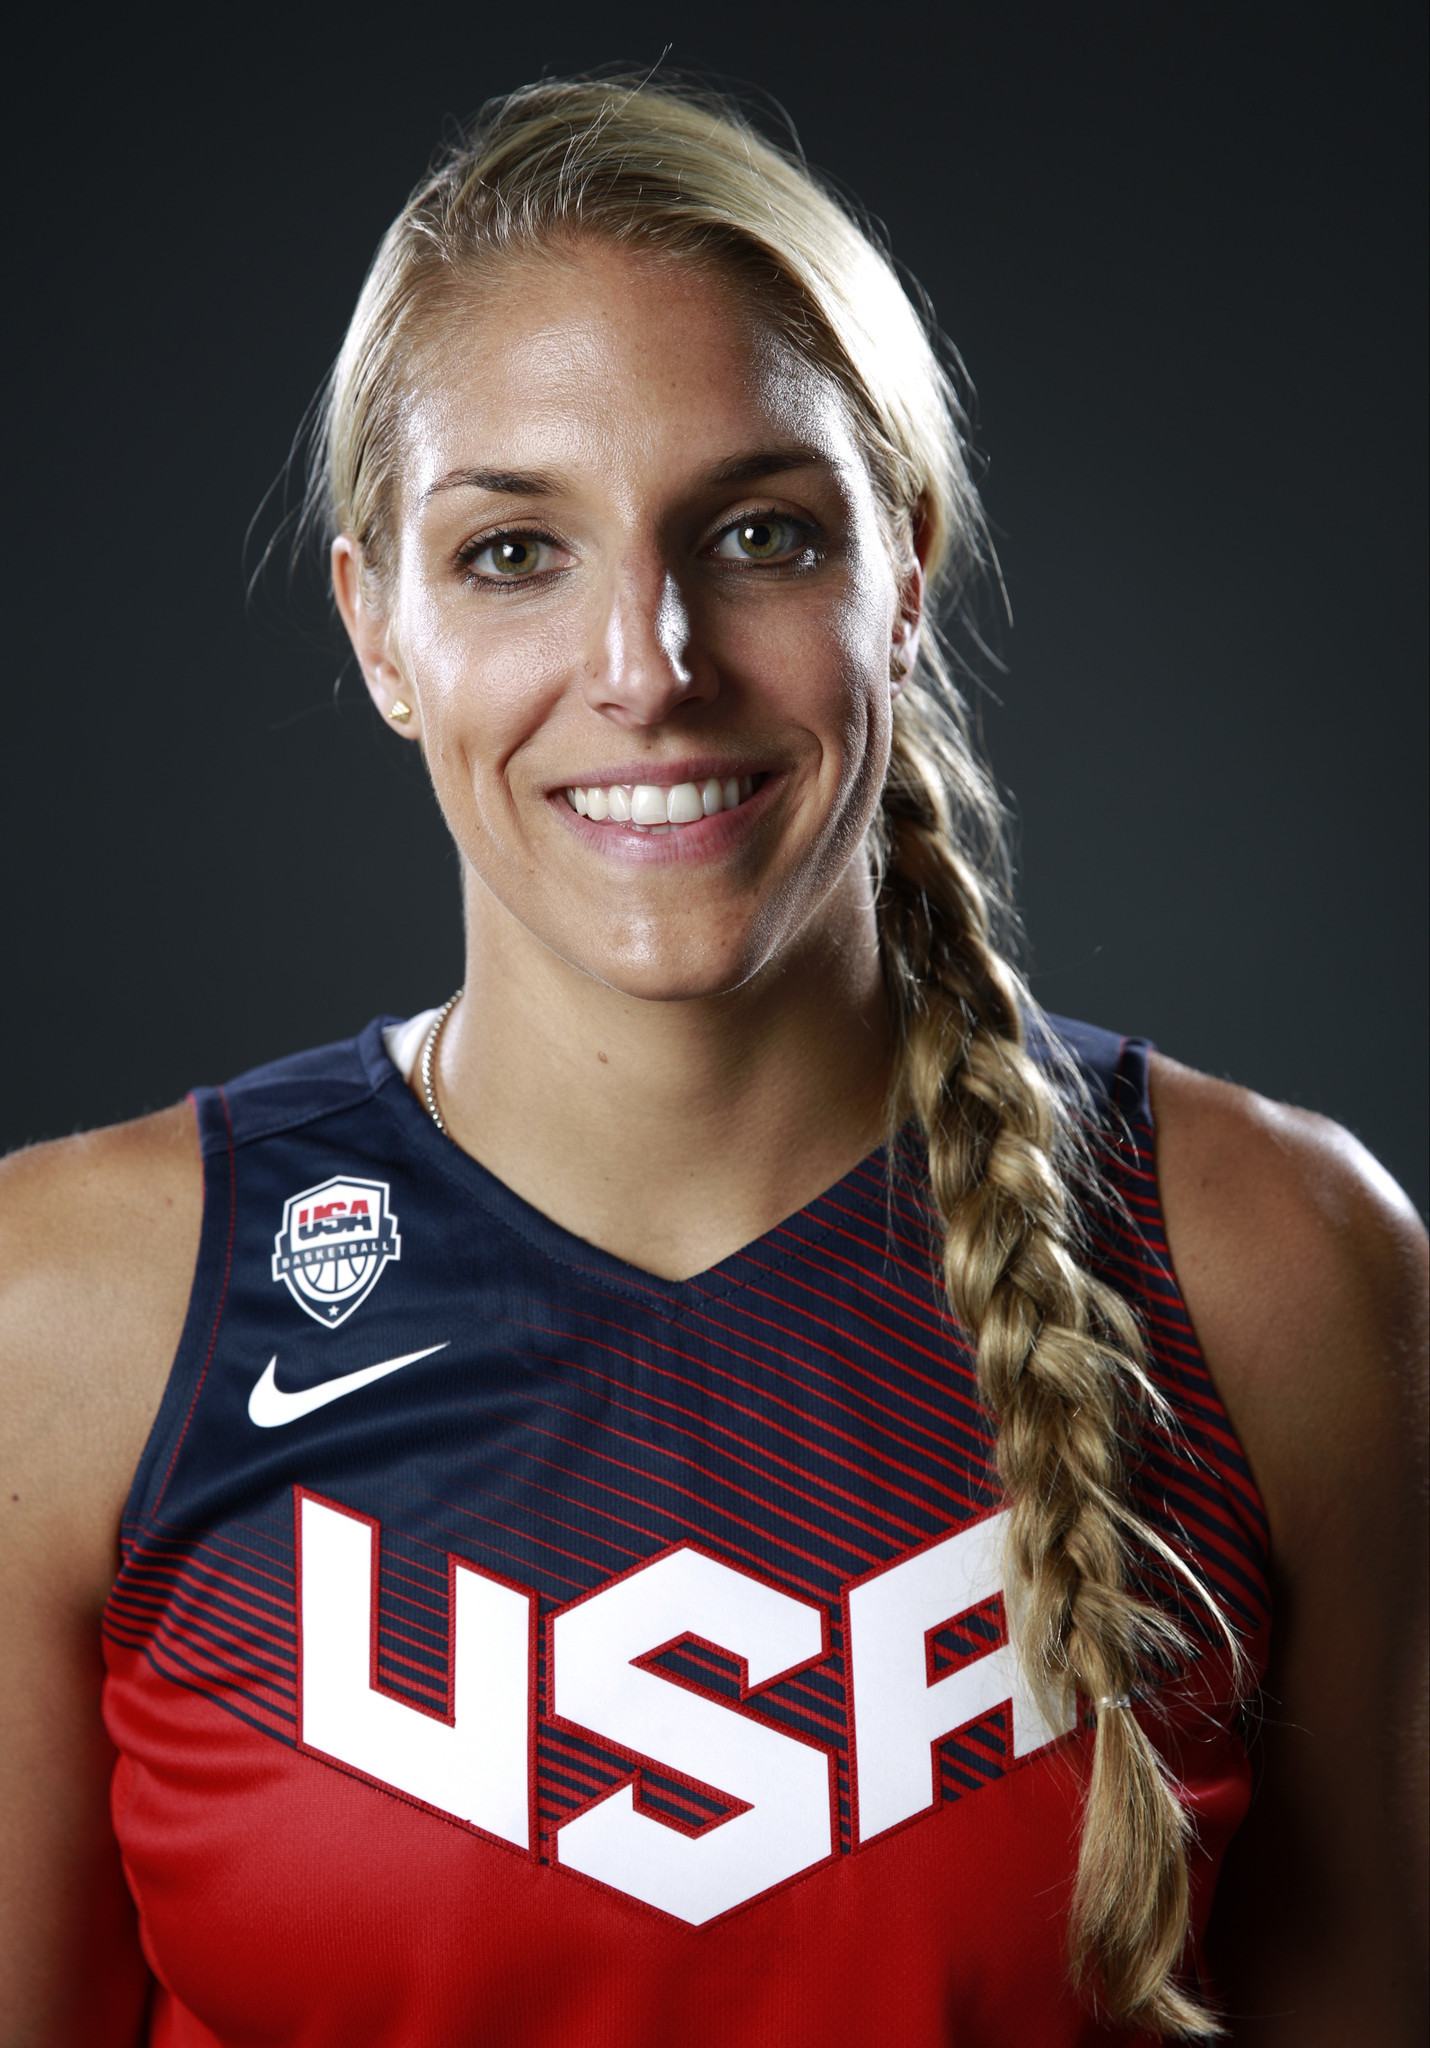 elena delle donne engaged according to vogue basketball